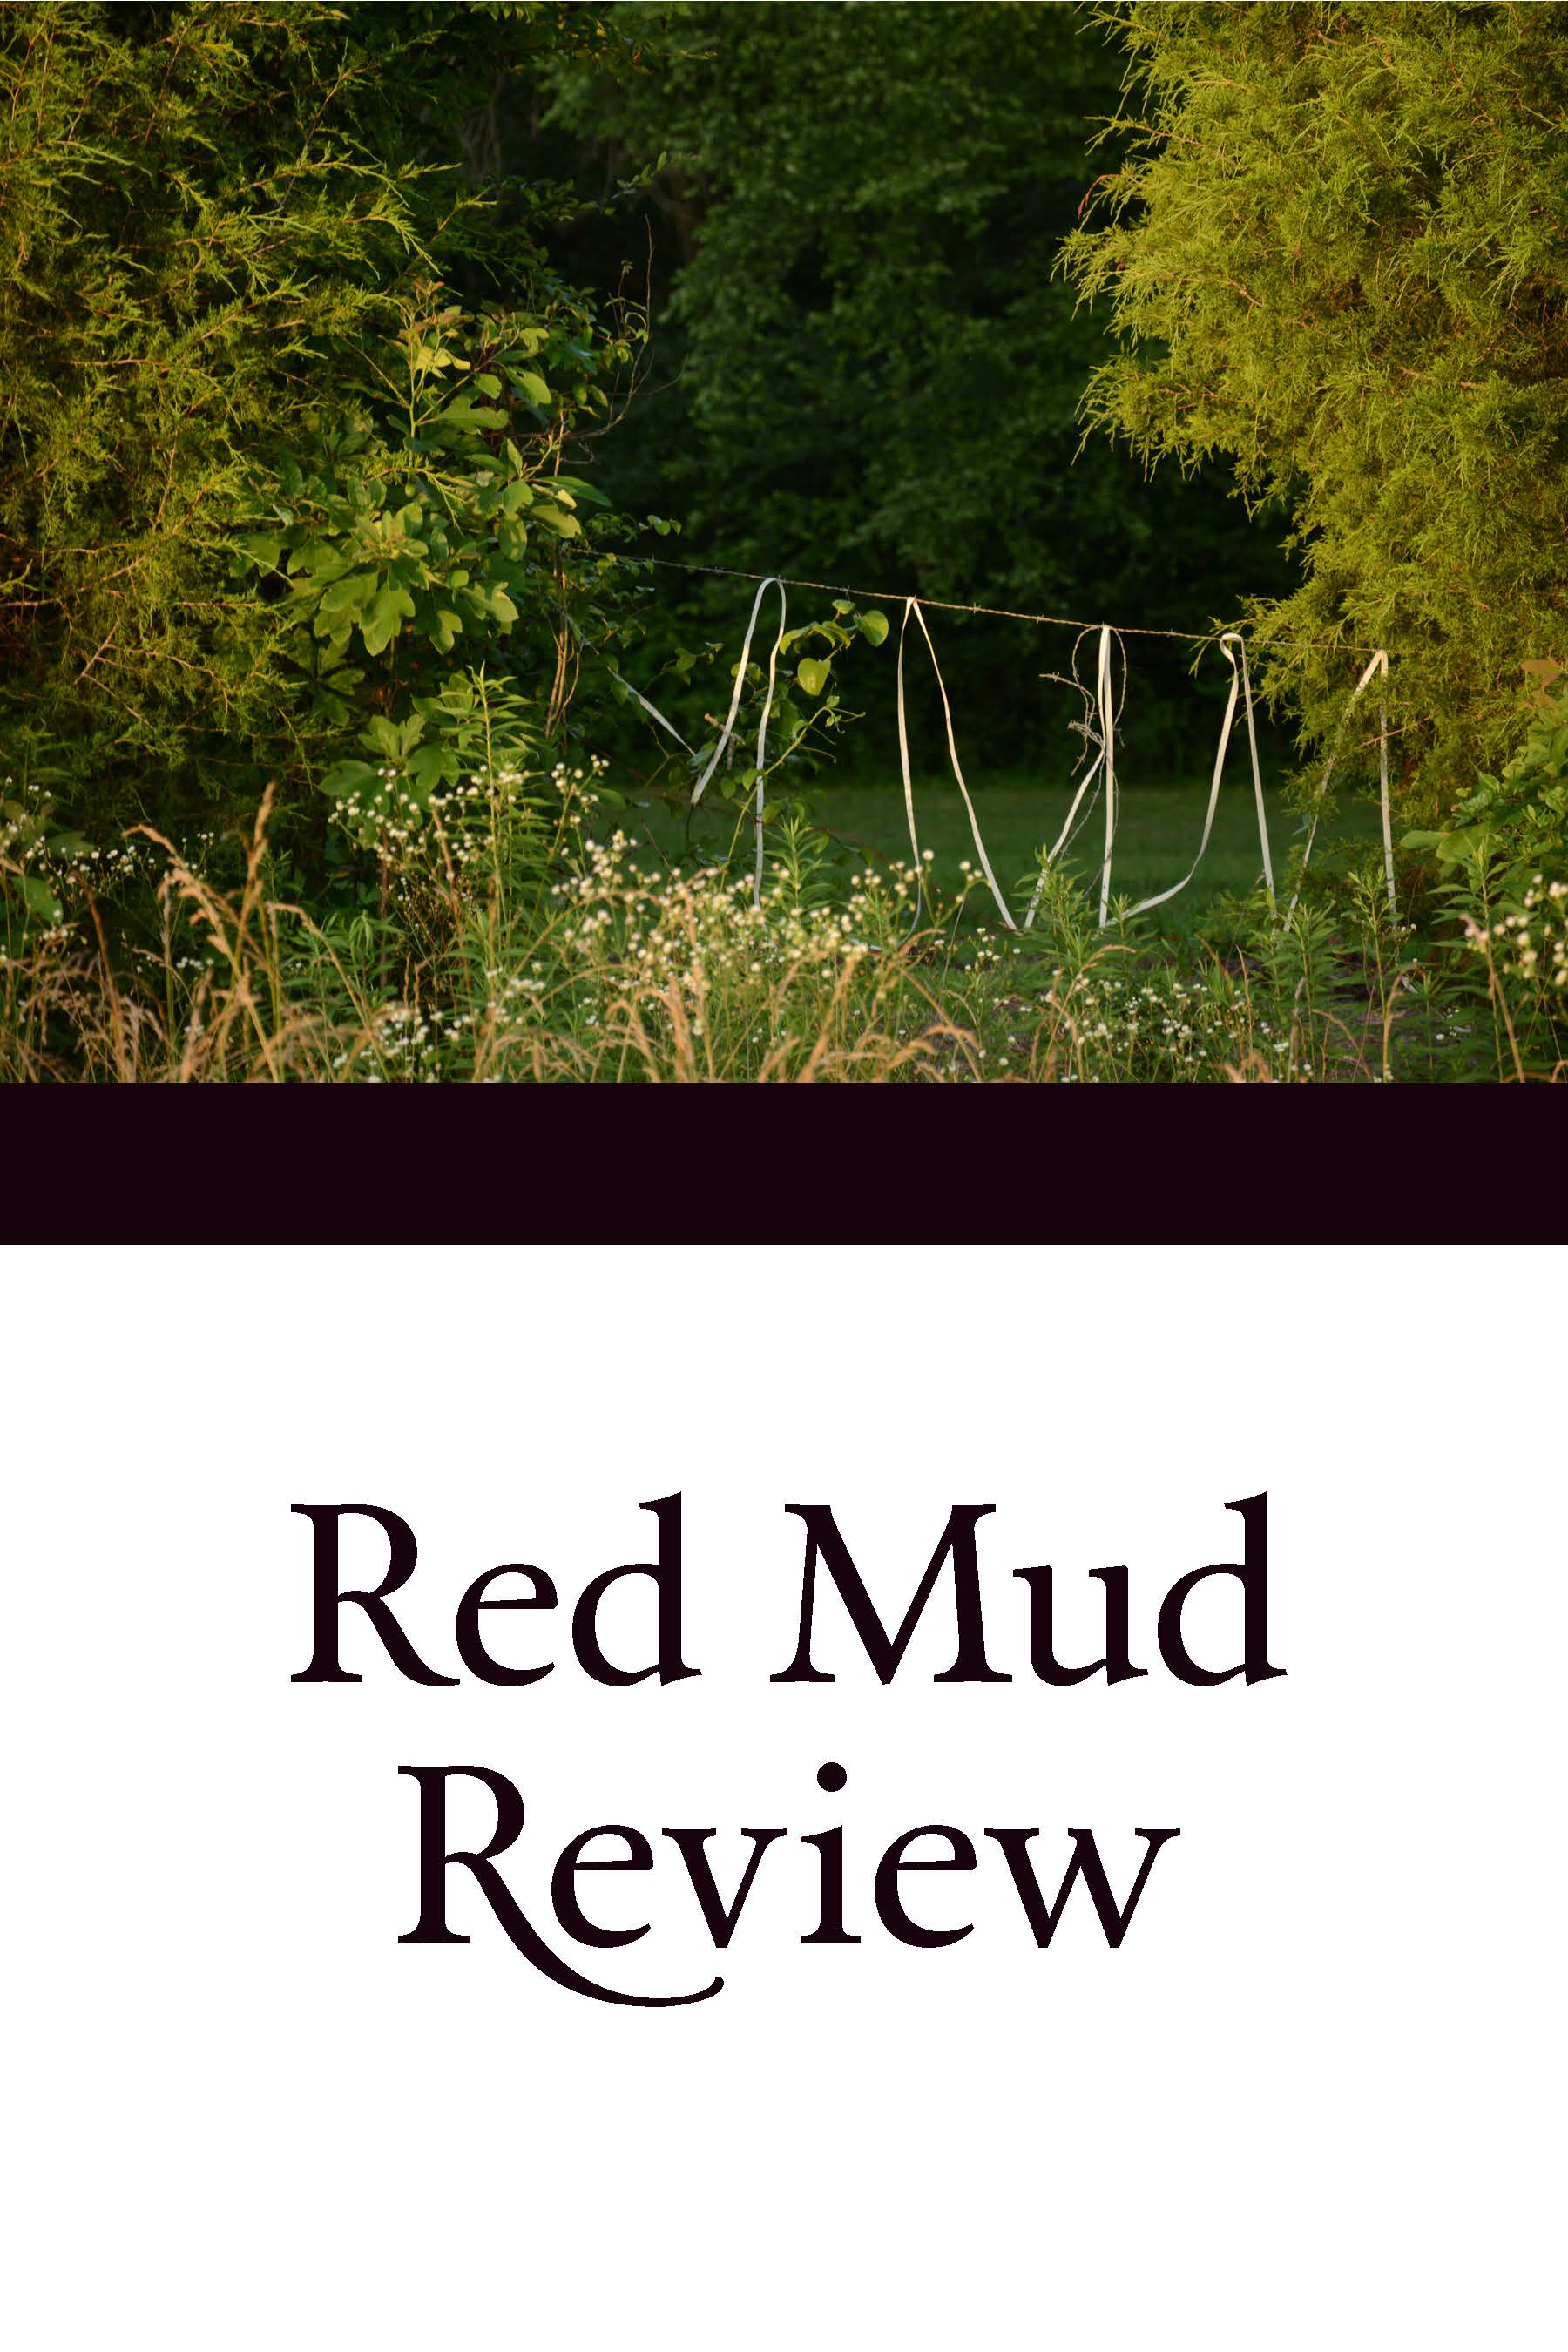 Red Mud Review Cover 2014-2015